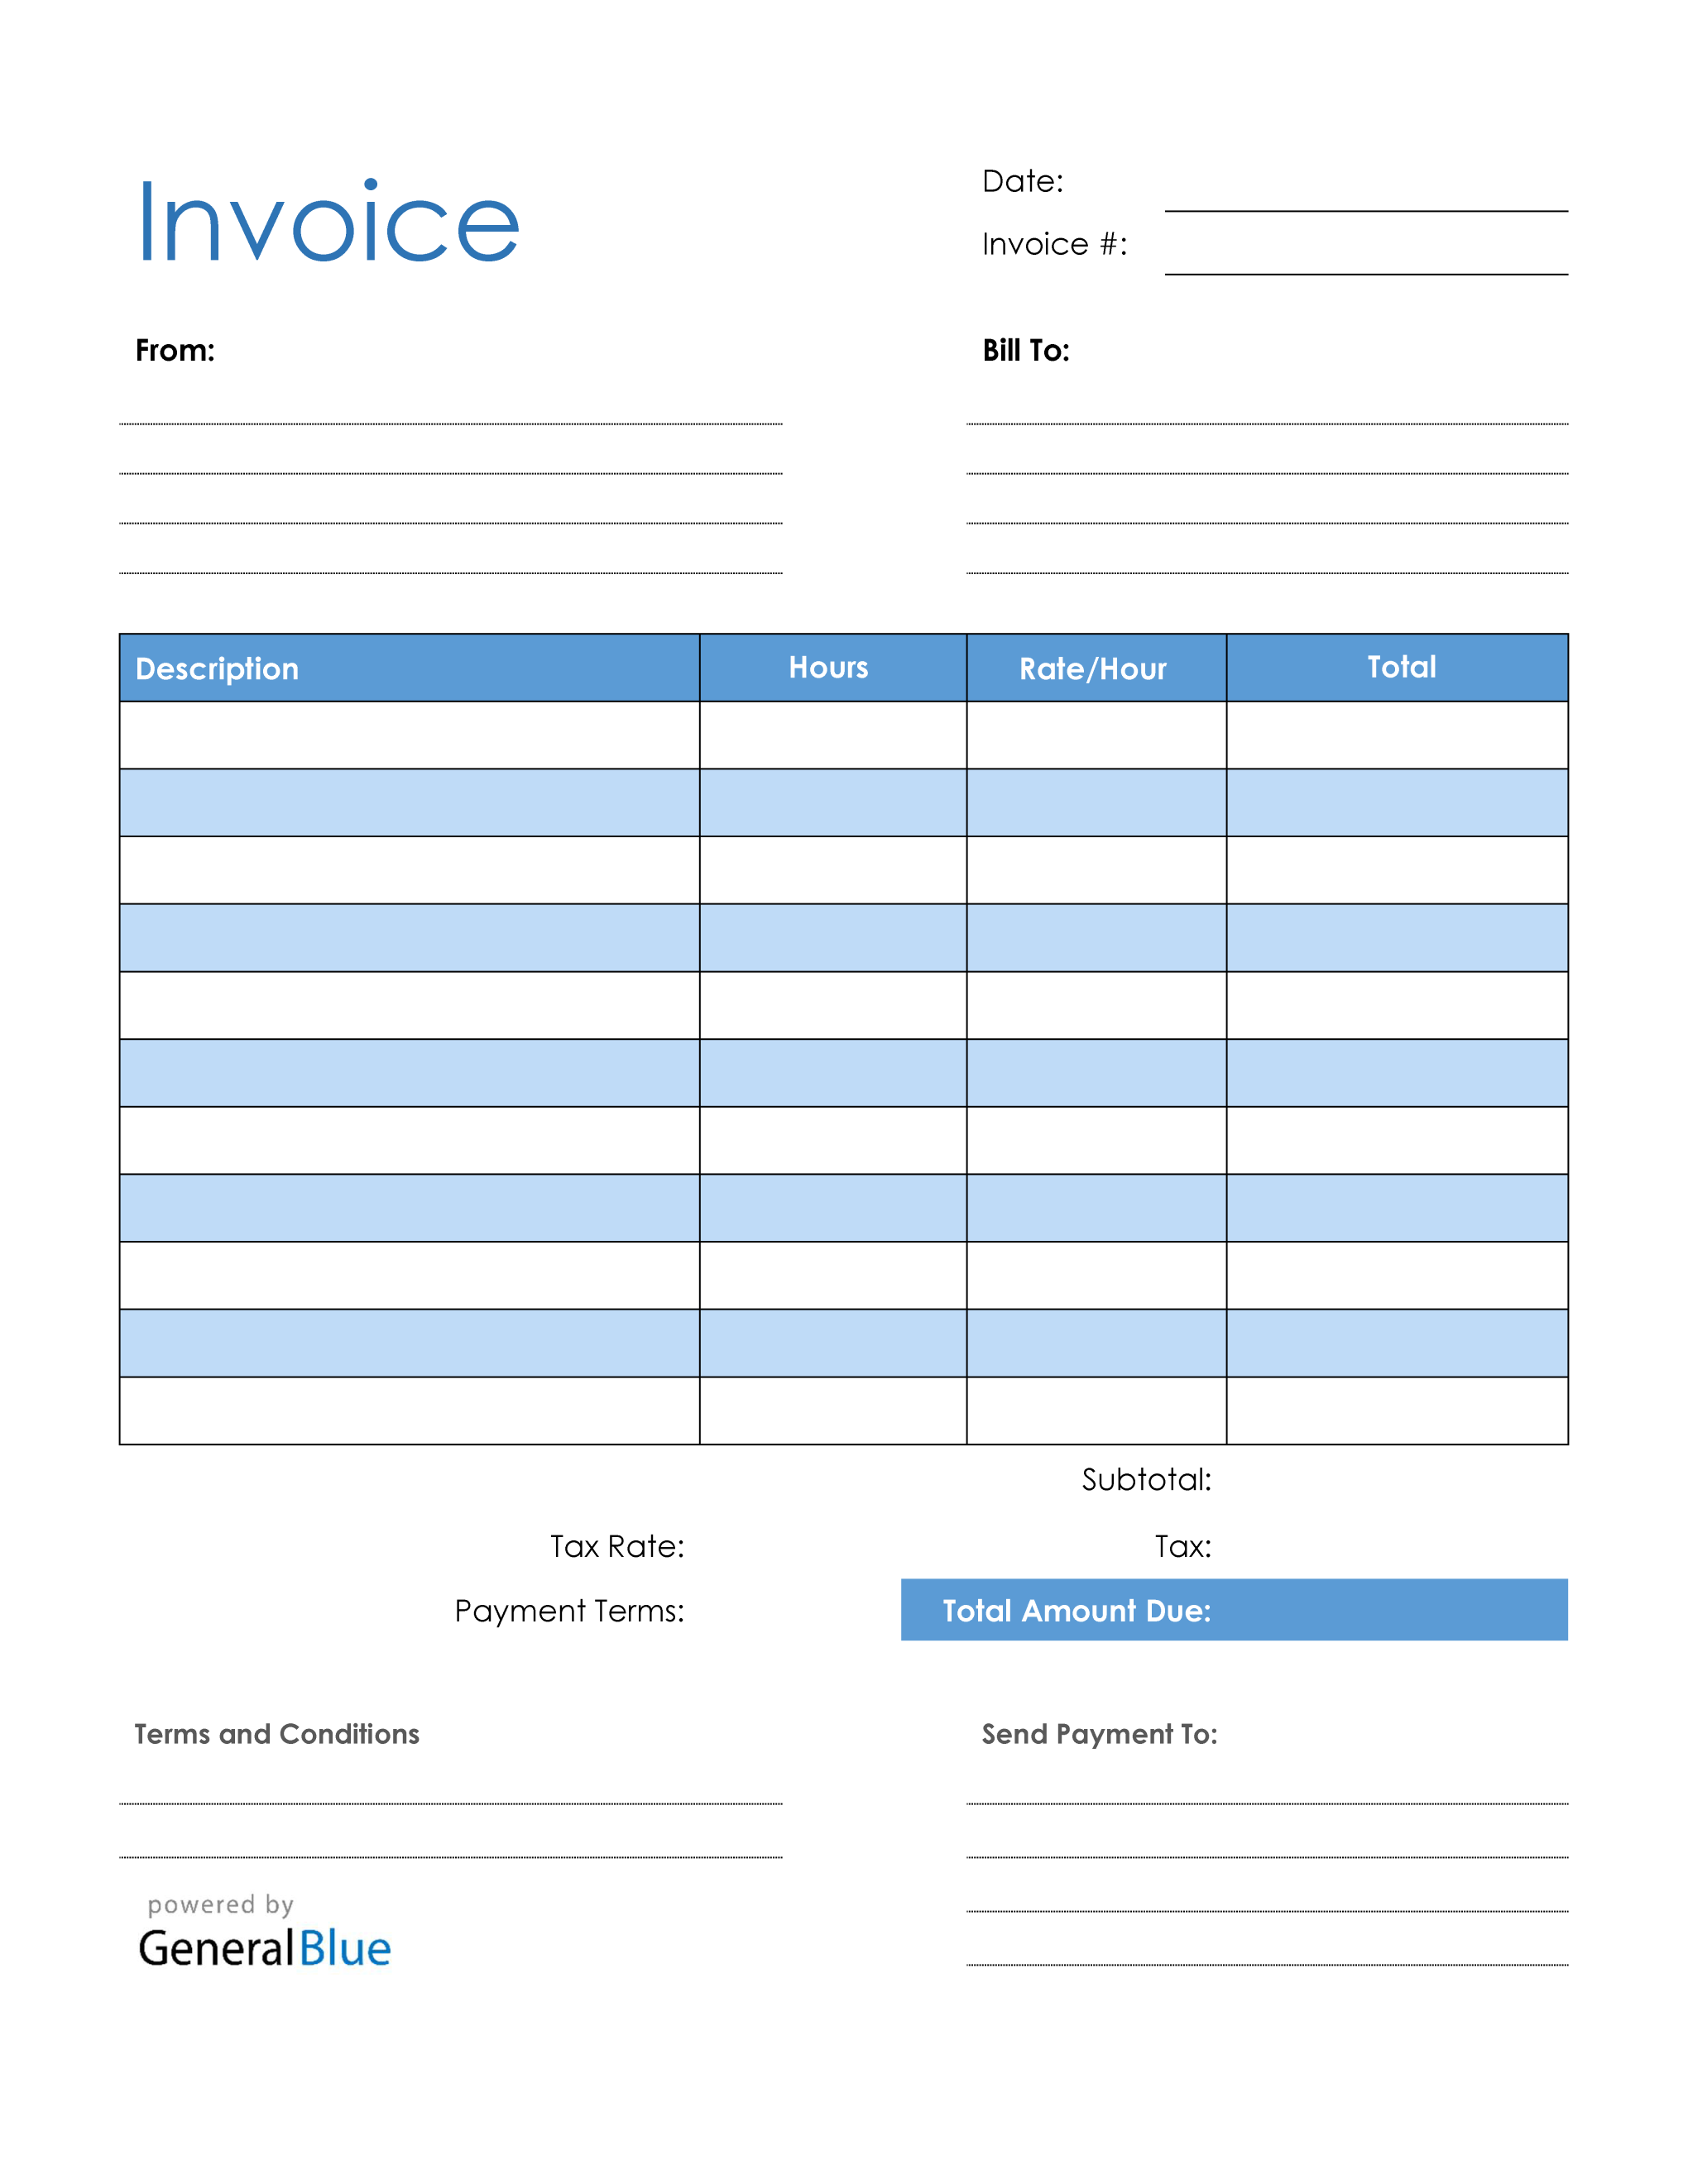 Blank Invoice Template In Pdf Blue